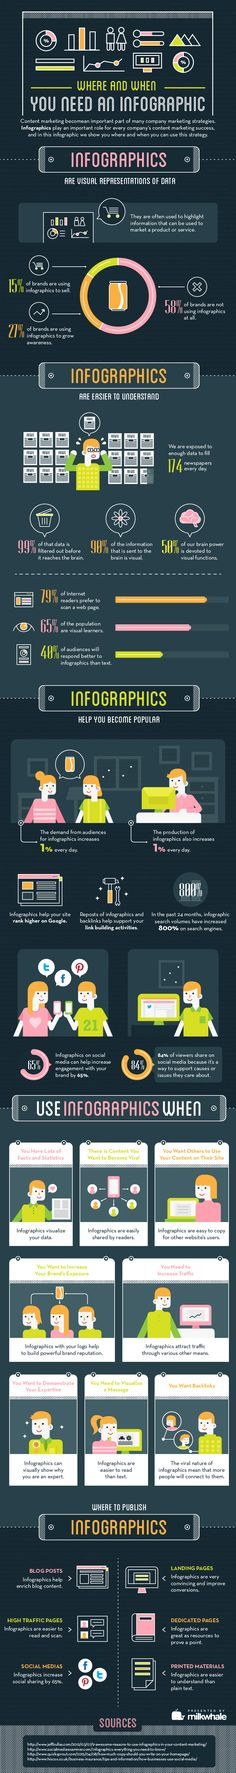 Where And When You Need An Infographic #Infographic #ContentMarketing